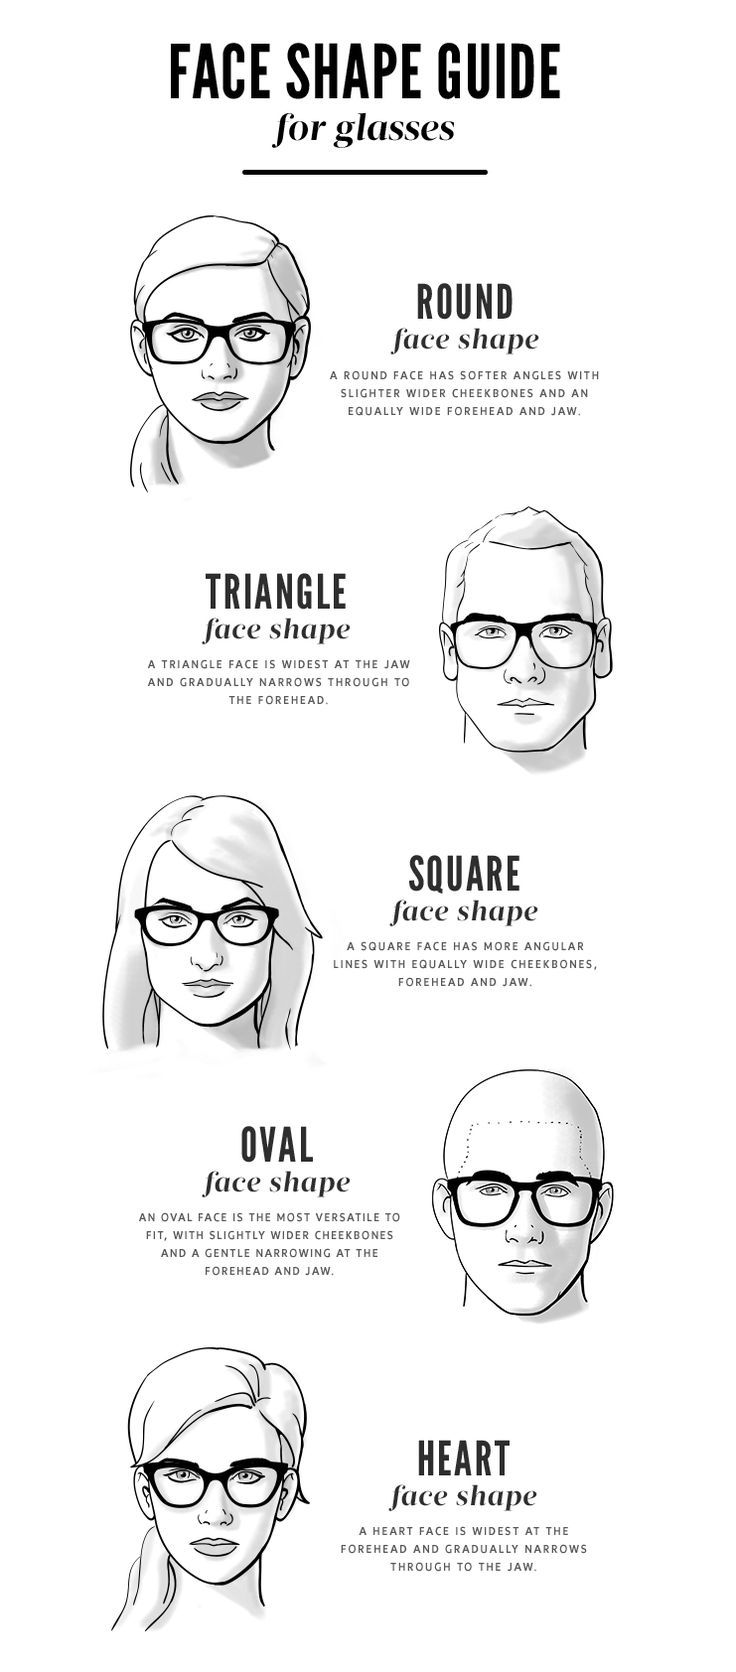 Best Glasses Frame Shape For Square Face : Face Shape Guide for Glasses Which glasses shape best ...